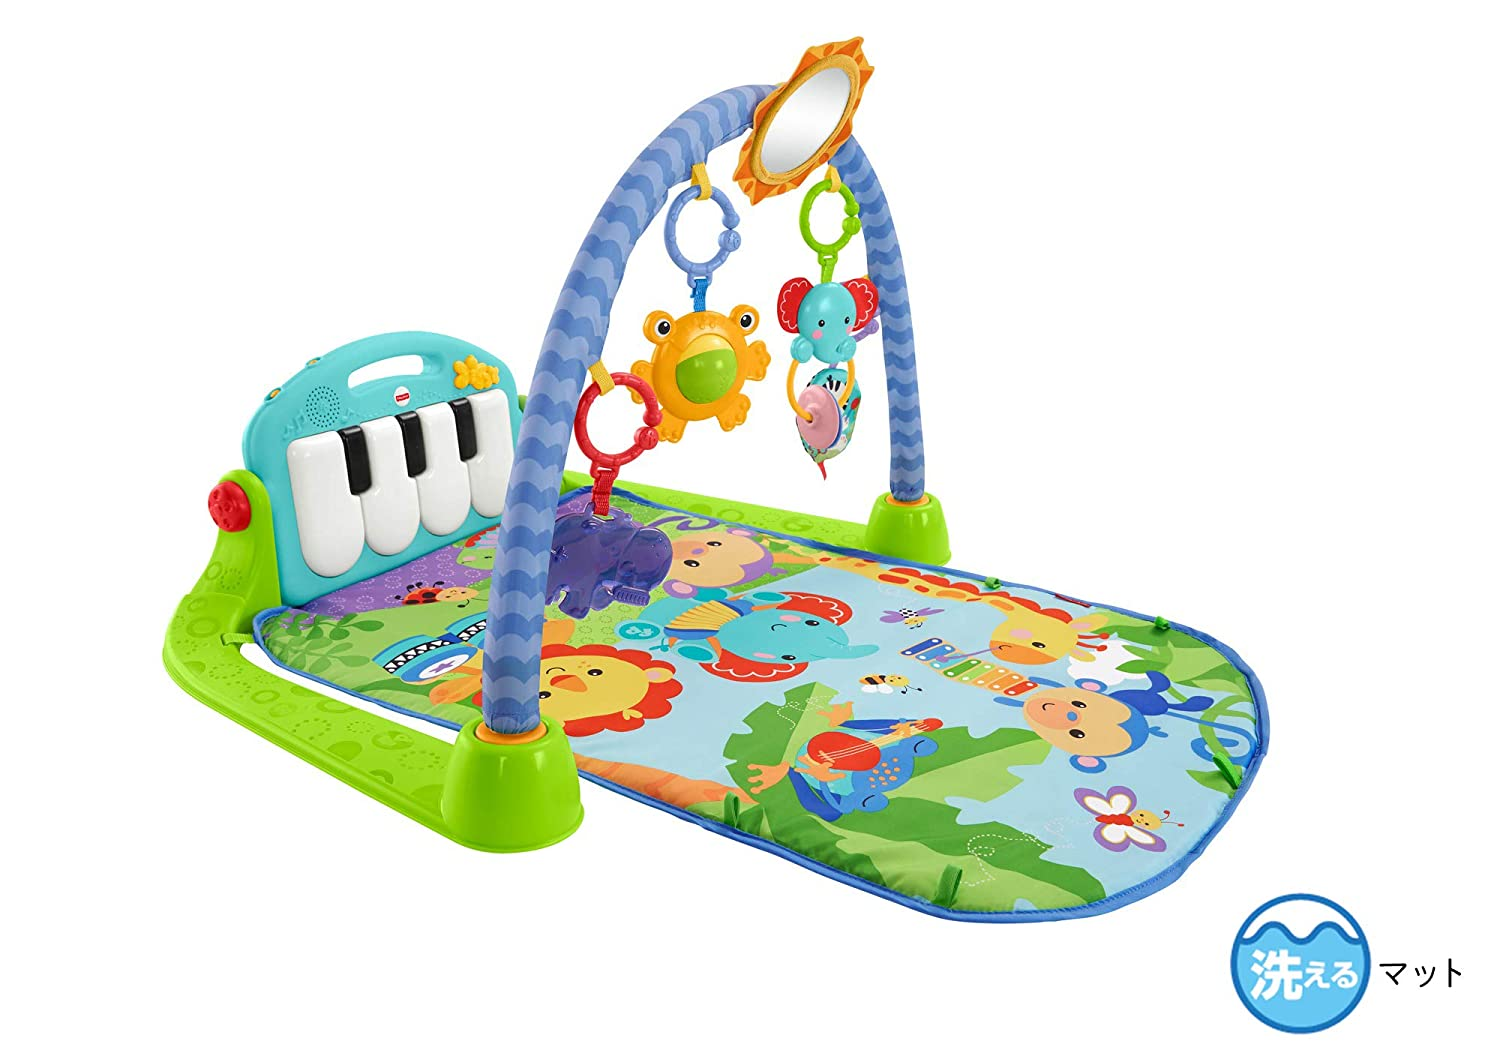 TODDLER/'S Kick and Play Piano Gym For Baby Activity Toy Center NEW AND SEALED